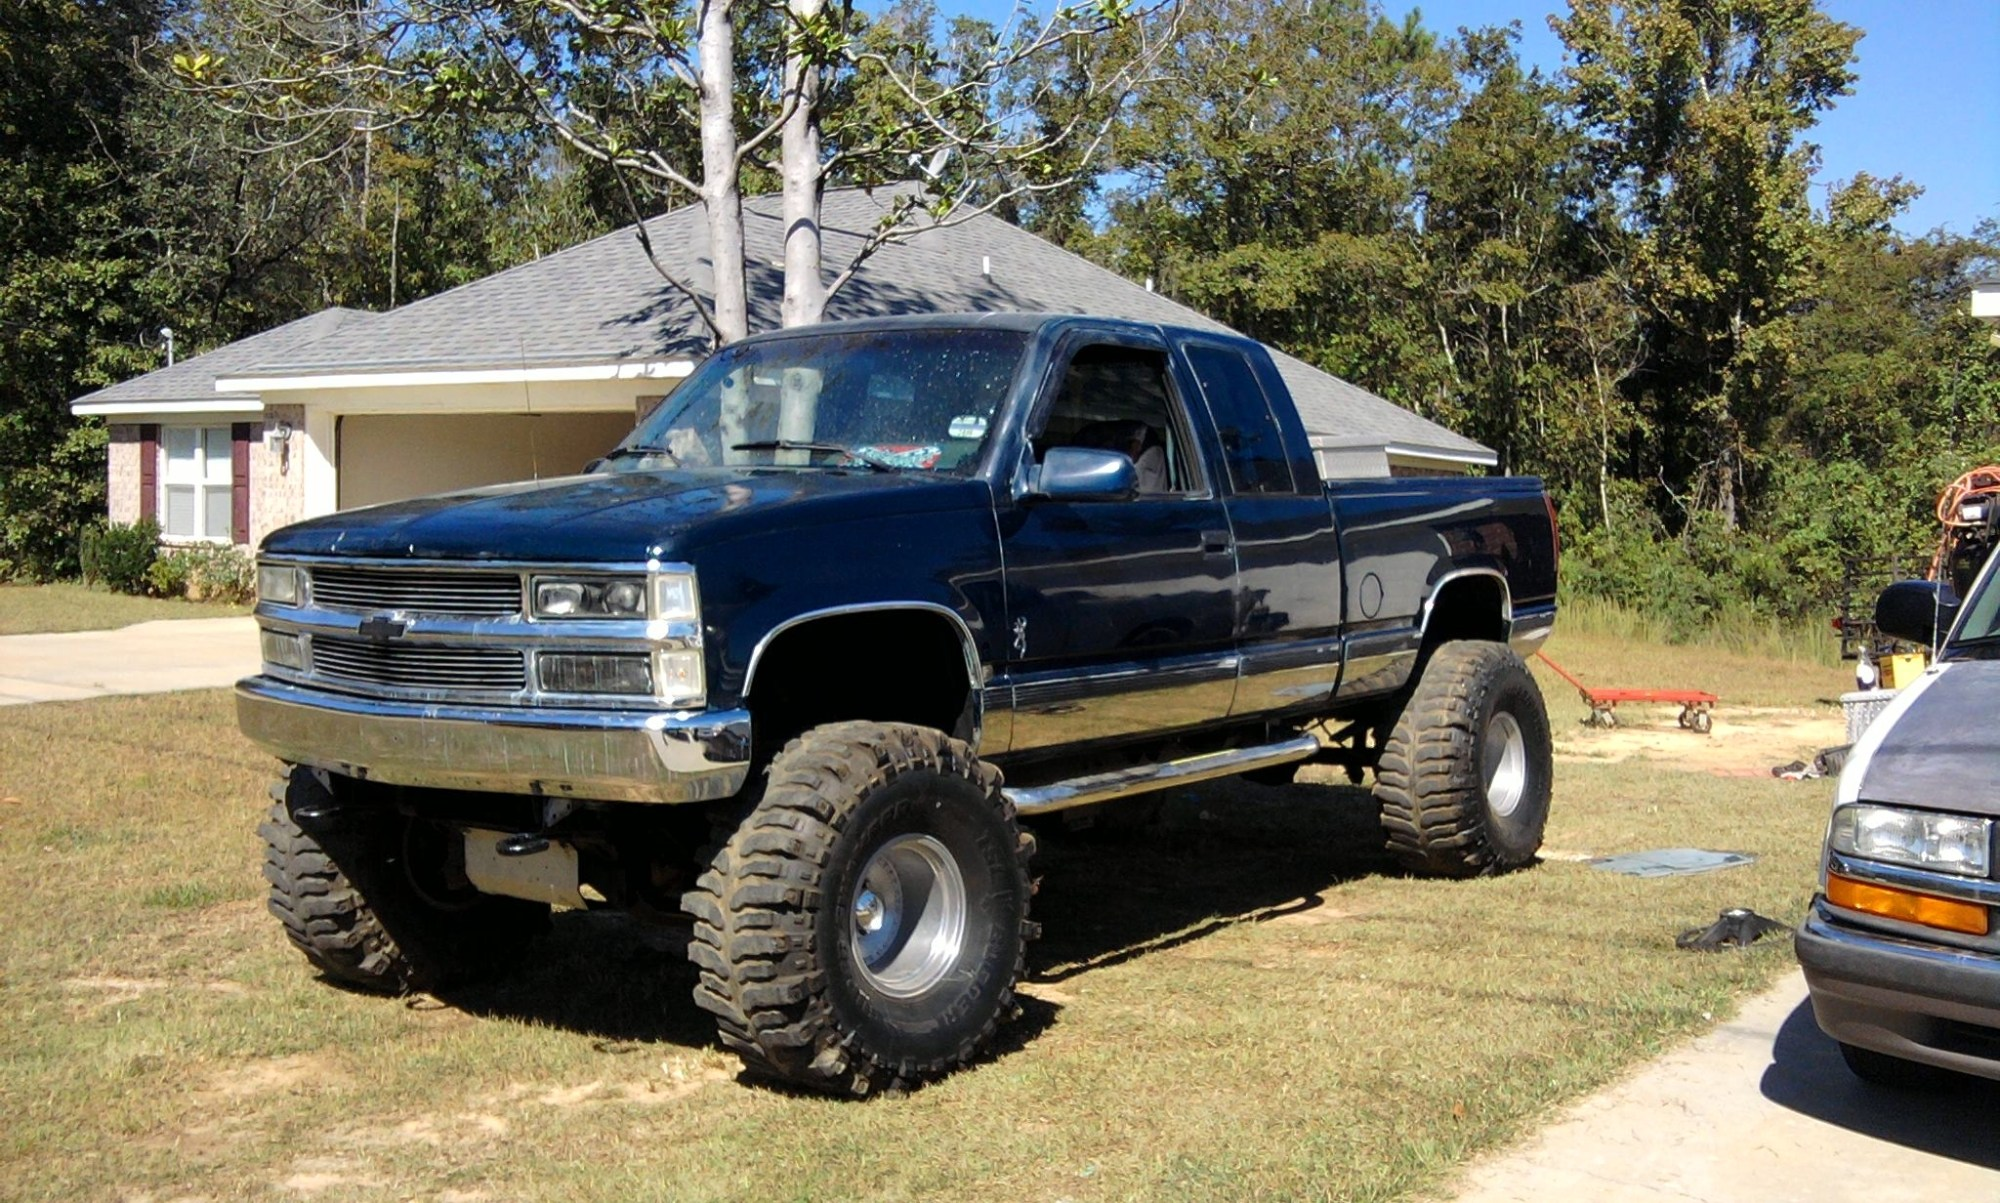 hight resolution of another beech boy 1989 chevrolet silverado 1500 extended cab post 15218561